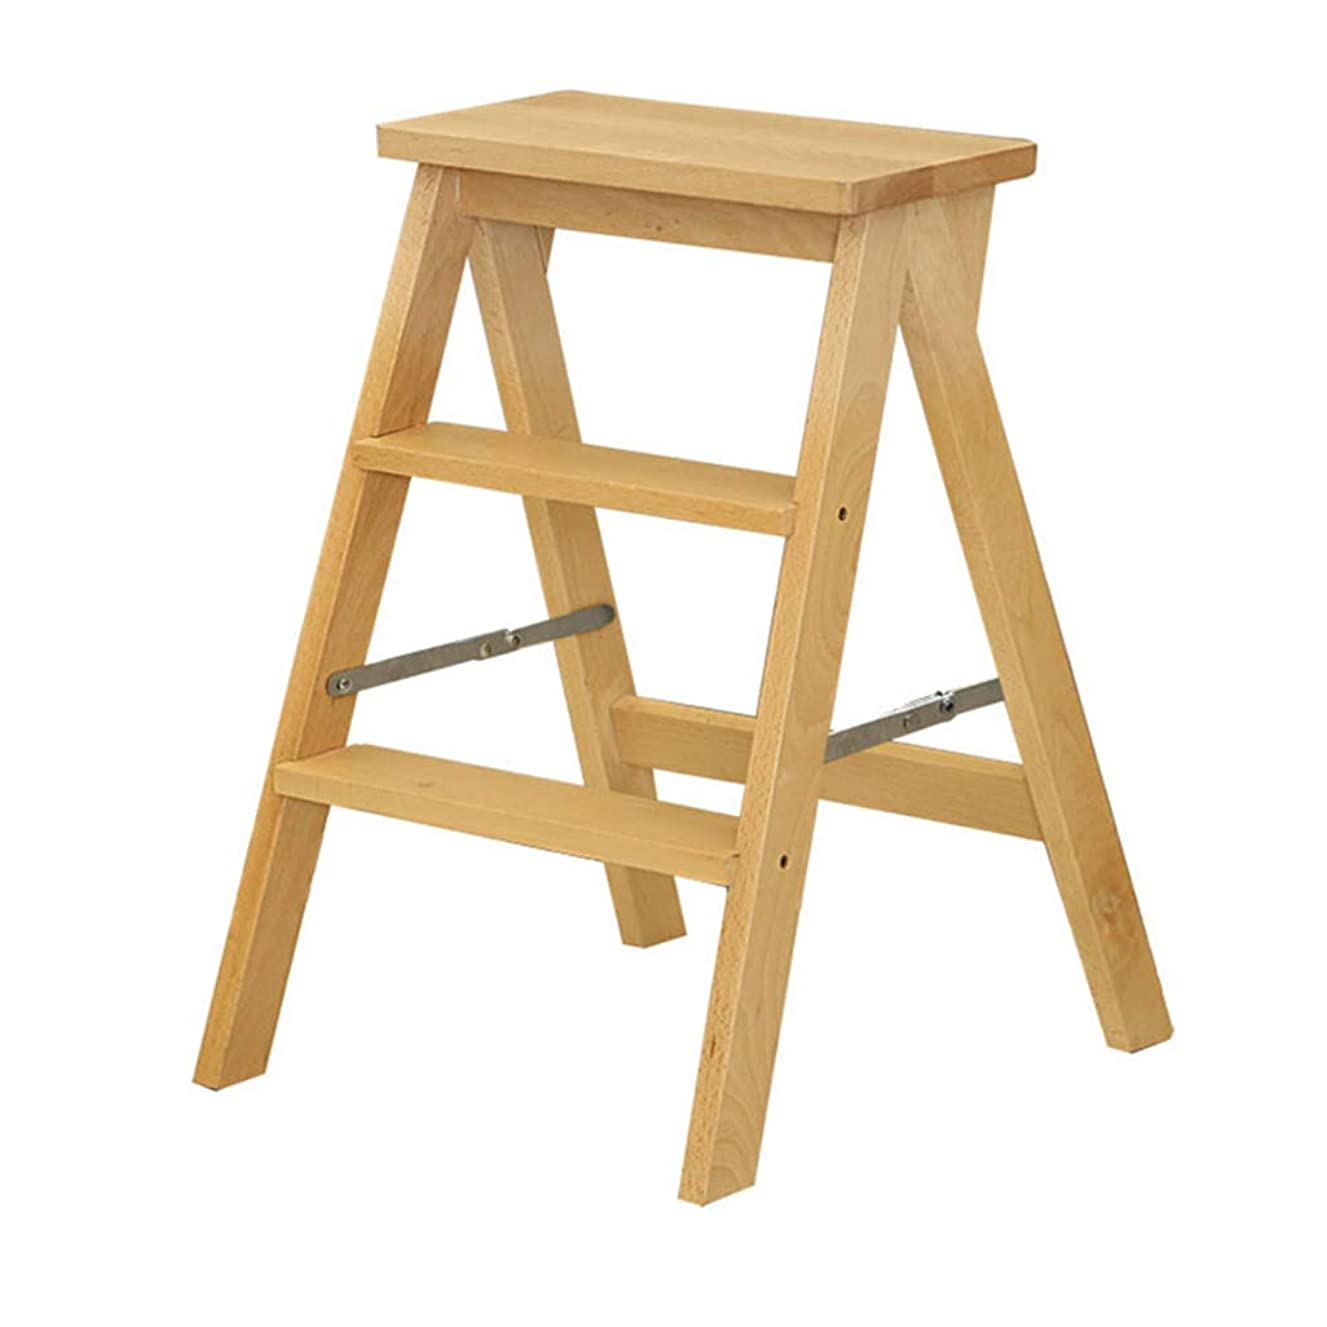 3 Tread Folding Stepstool/Ladder Chair Stool, Wood Stair Chair Stepladder Widened High Stool Home Garden Tool Heavy Duty Max. 150kg in Yellow 42x48x60cm